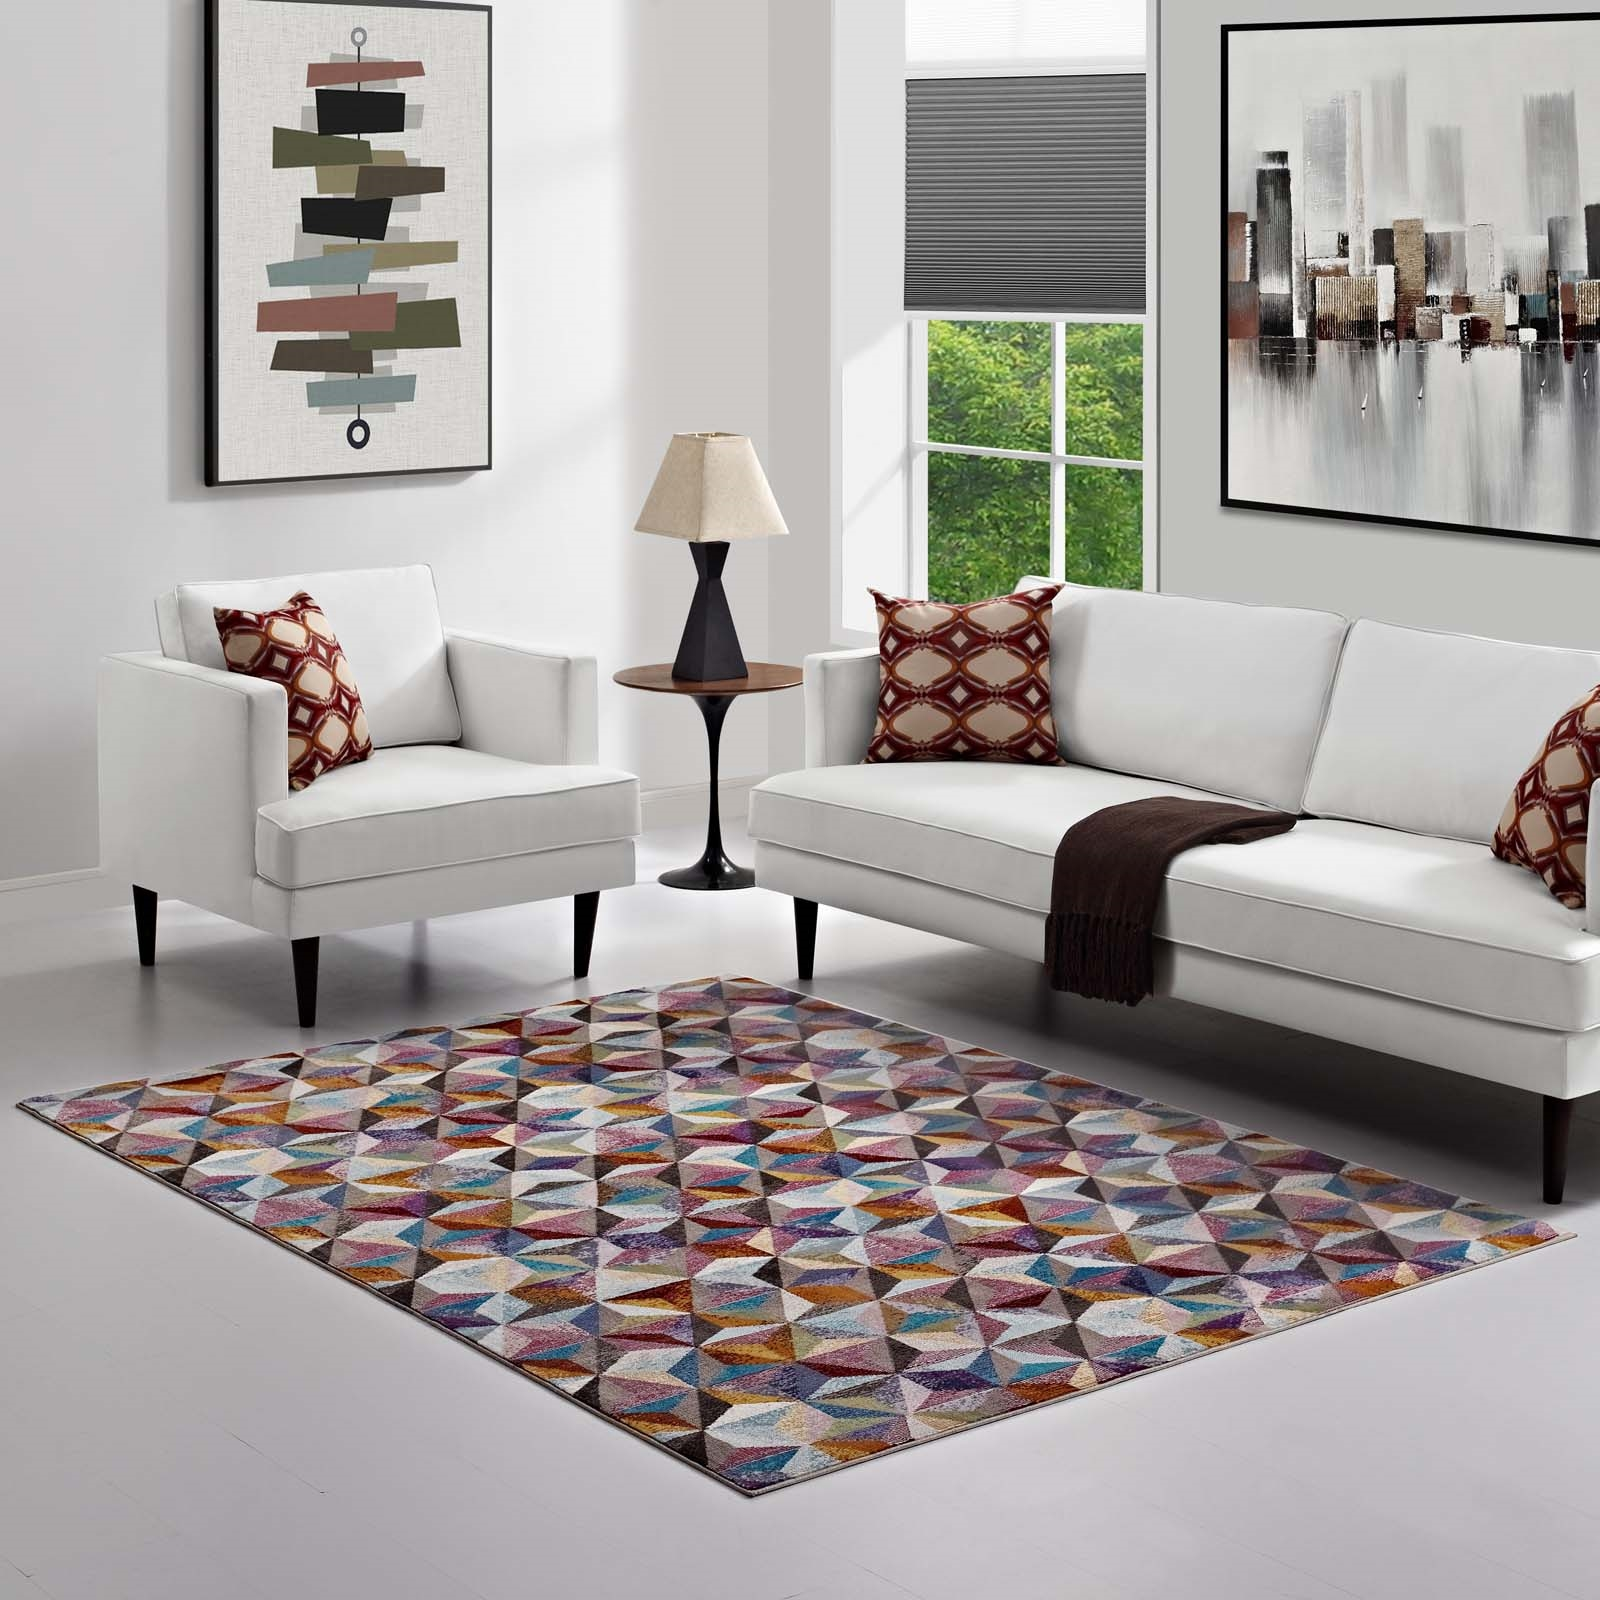 Arisa Geometric Hexagon Mosaic 5x8 Area Rug  in Multicolored